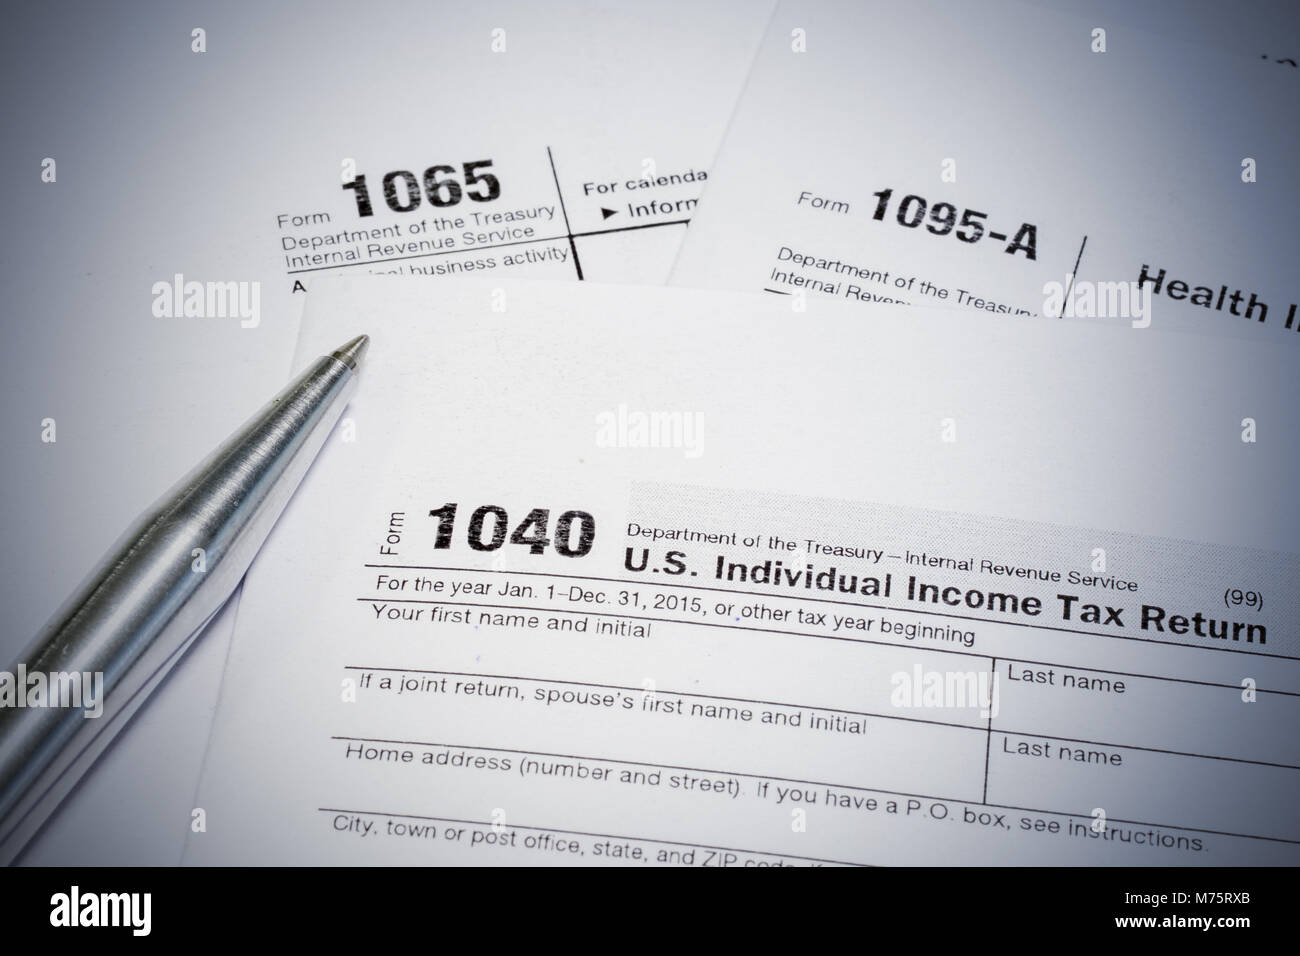 form 1065 and 1040  US tax form 8, 8, 8-A and pen Stock Photo ...